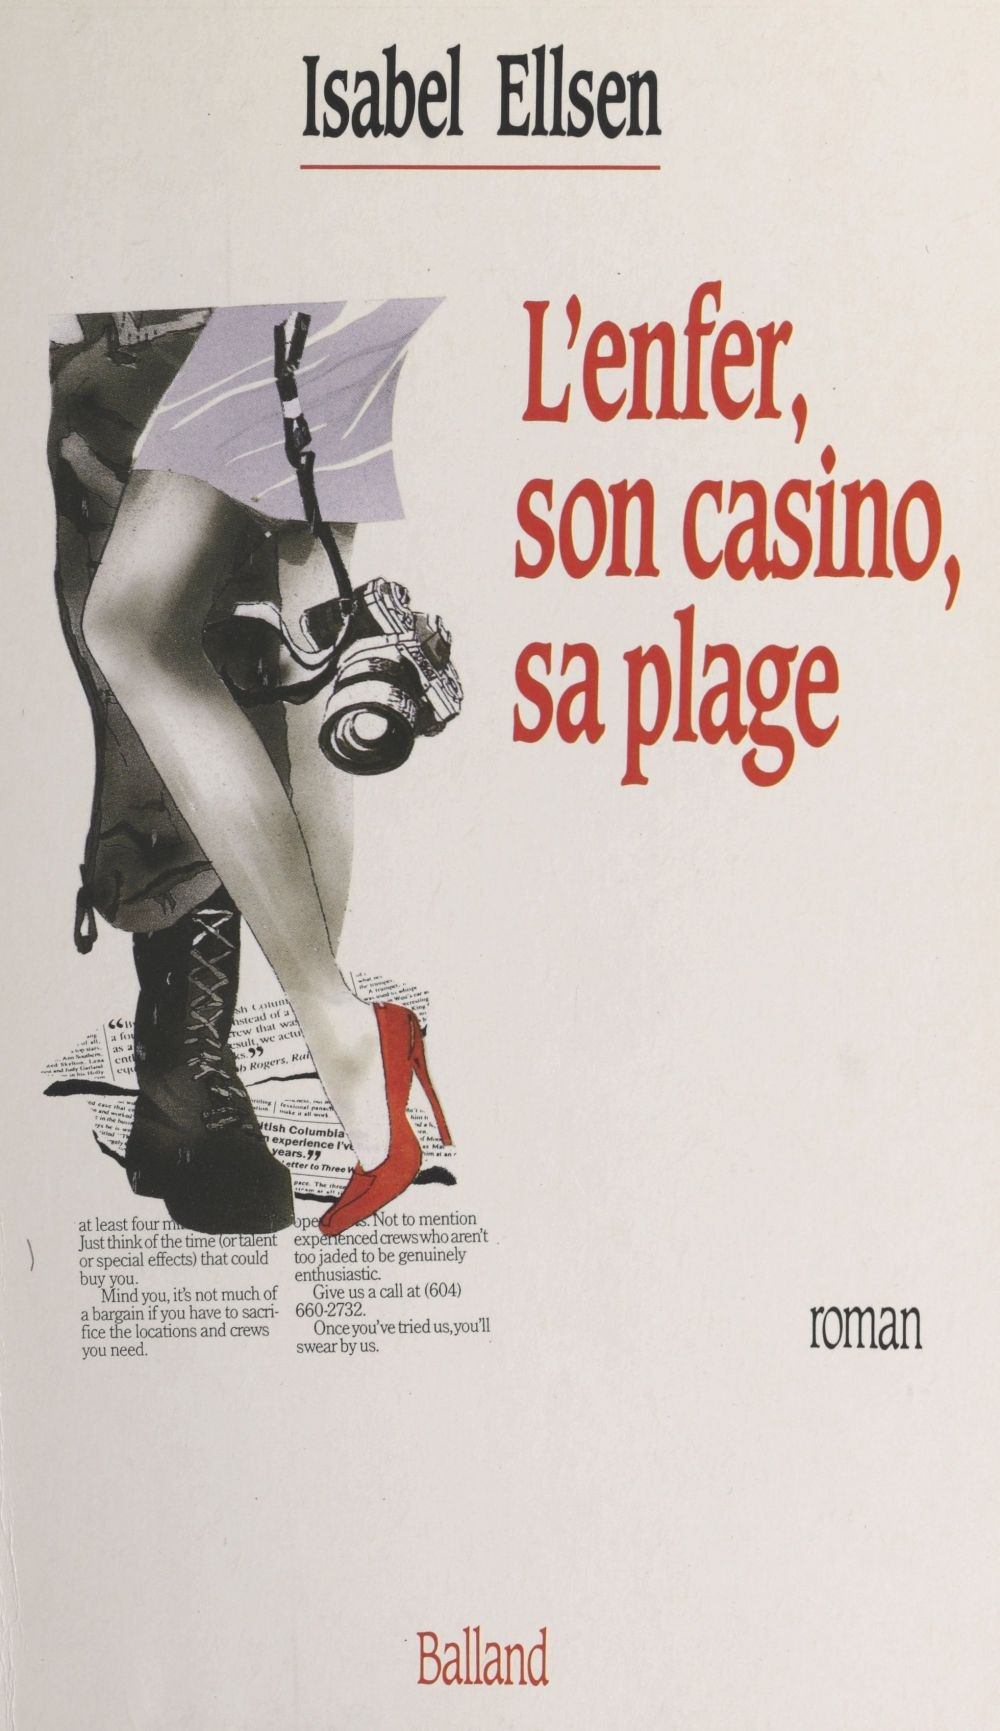 L'enfer, son casino, sa plage